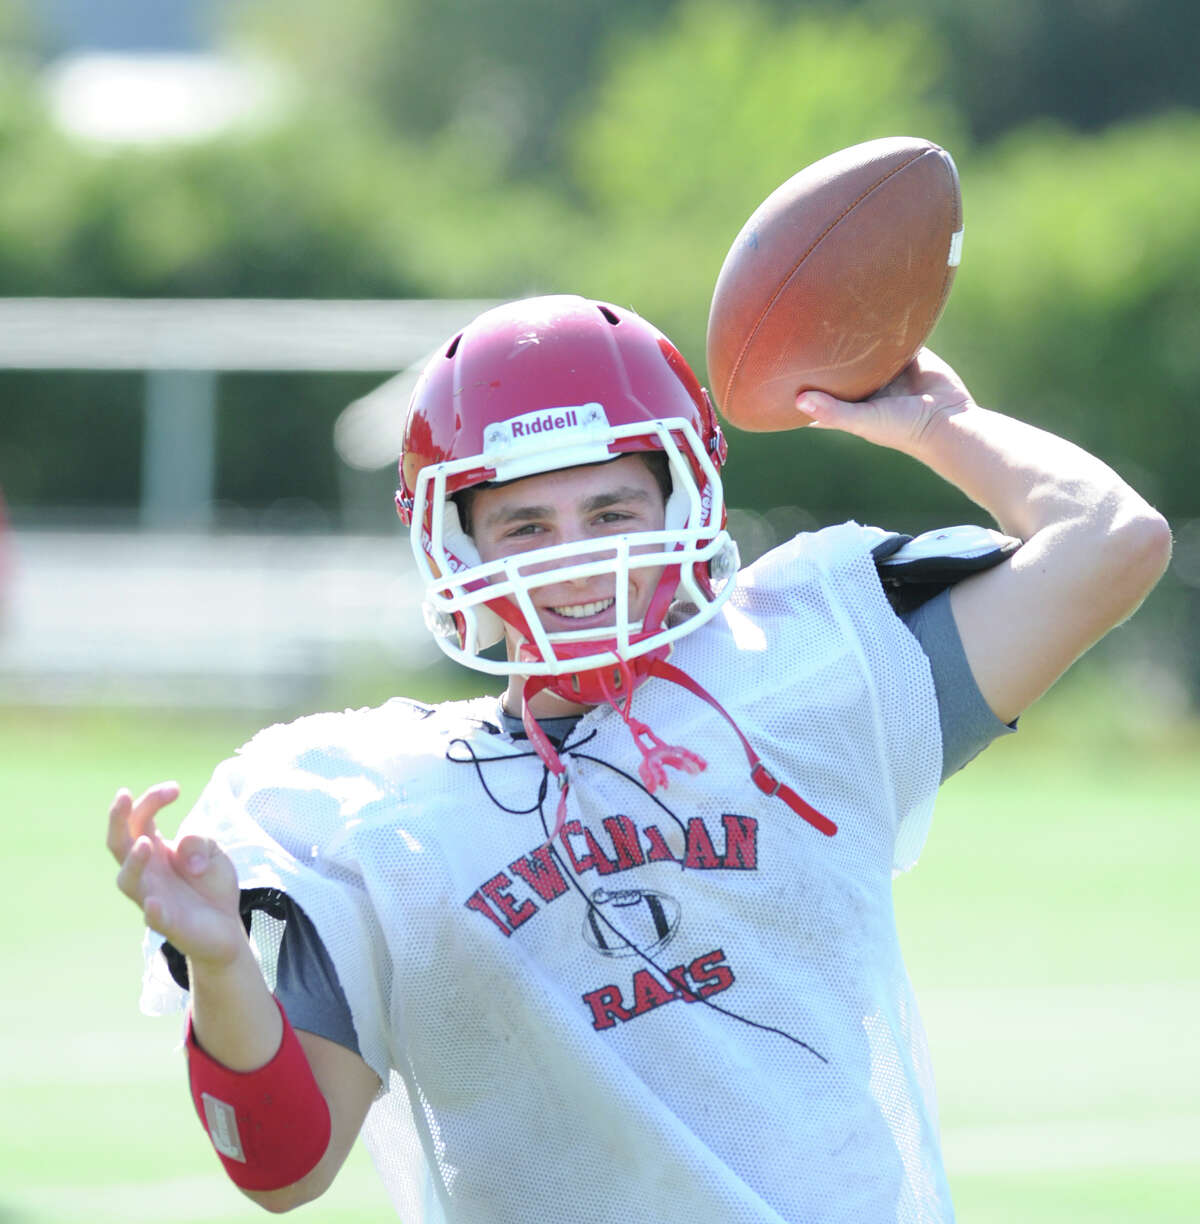 New Canaan High School Football quarterback and wide receiver, Teddy Bossidy, a junior, during football practice at the school, Wednesday, Sept. 12, 2012.